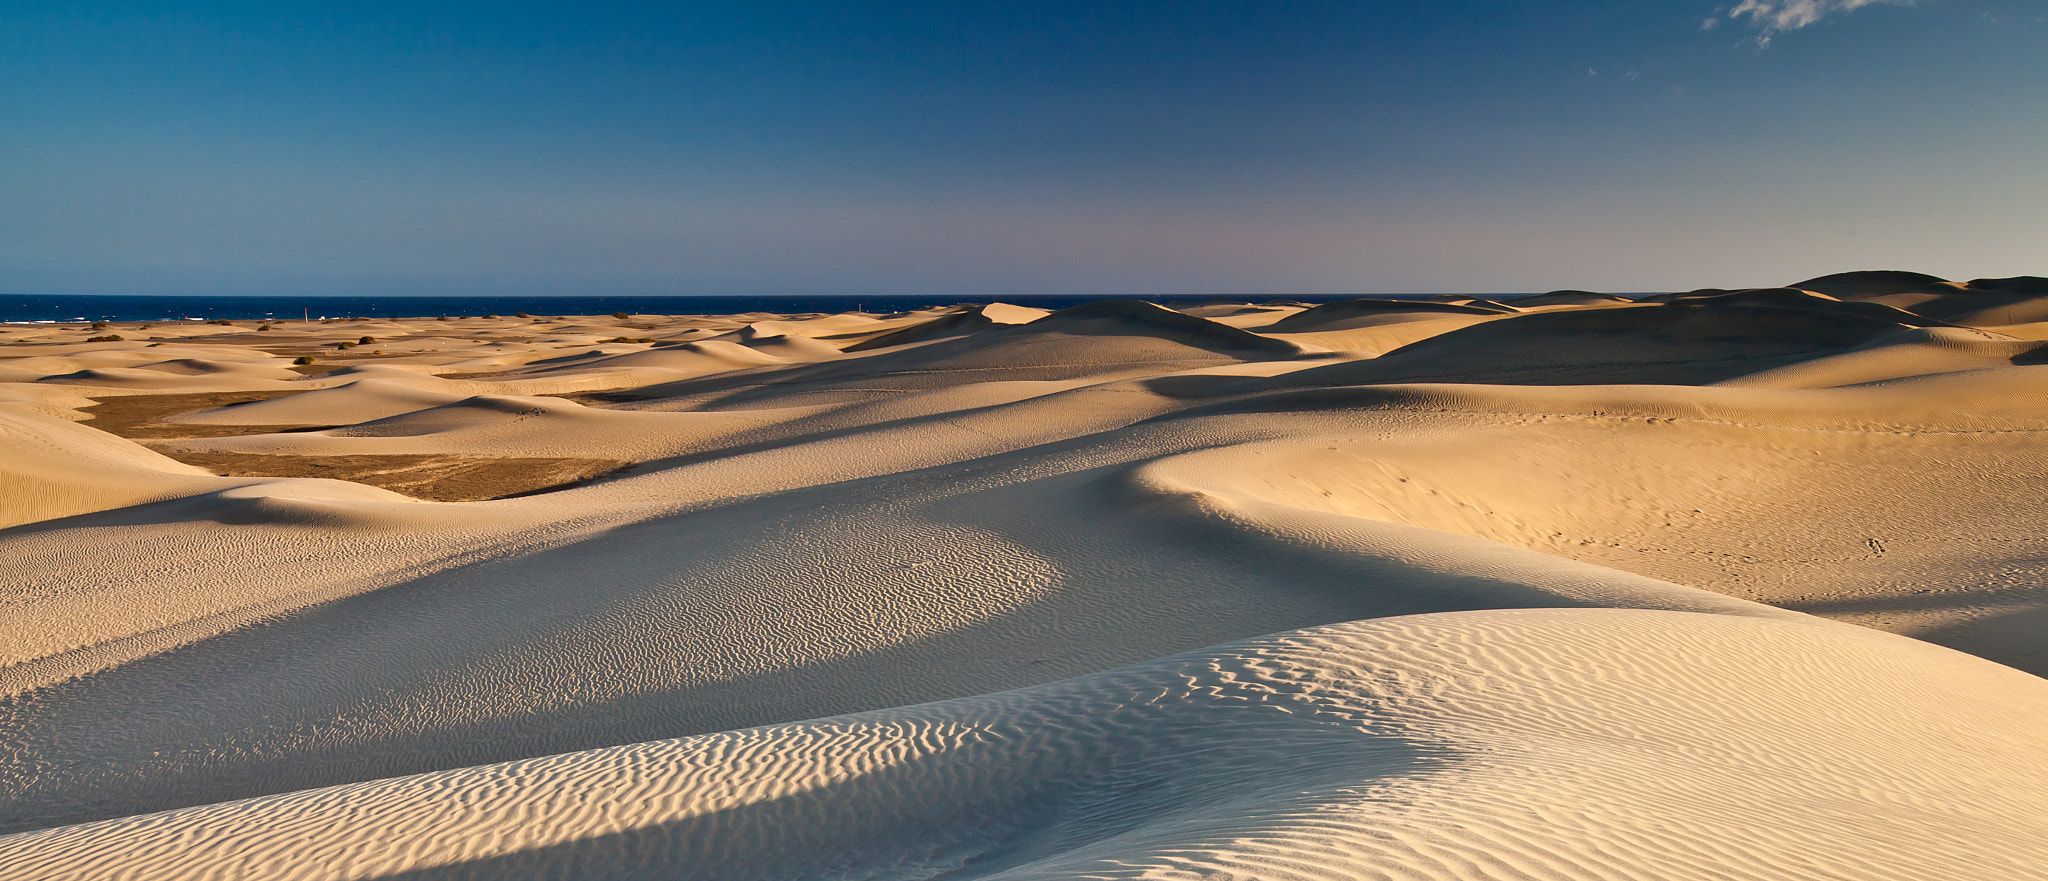 Photograph Dunes of Gran Canarys by Thorsten Jung on 500px